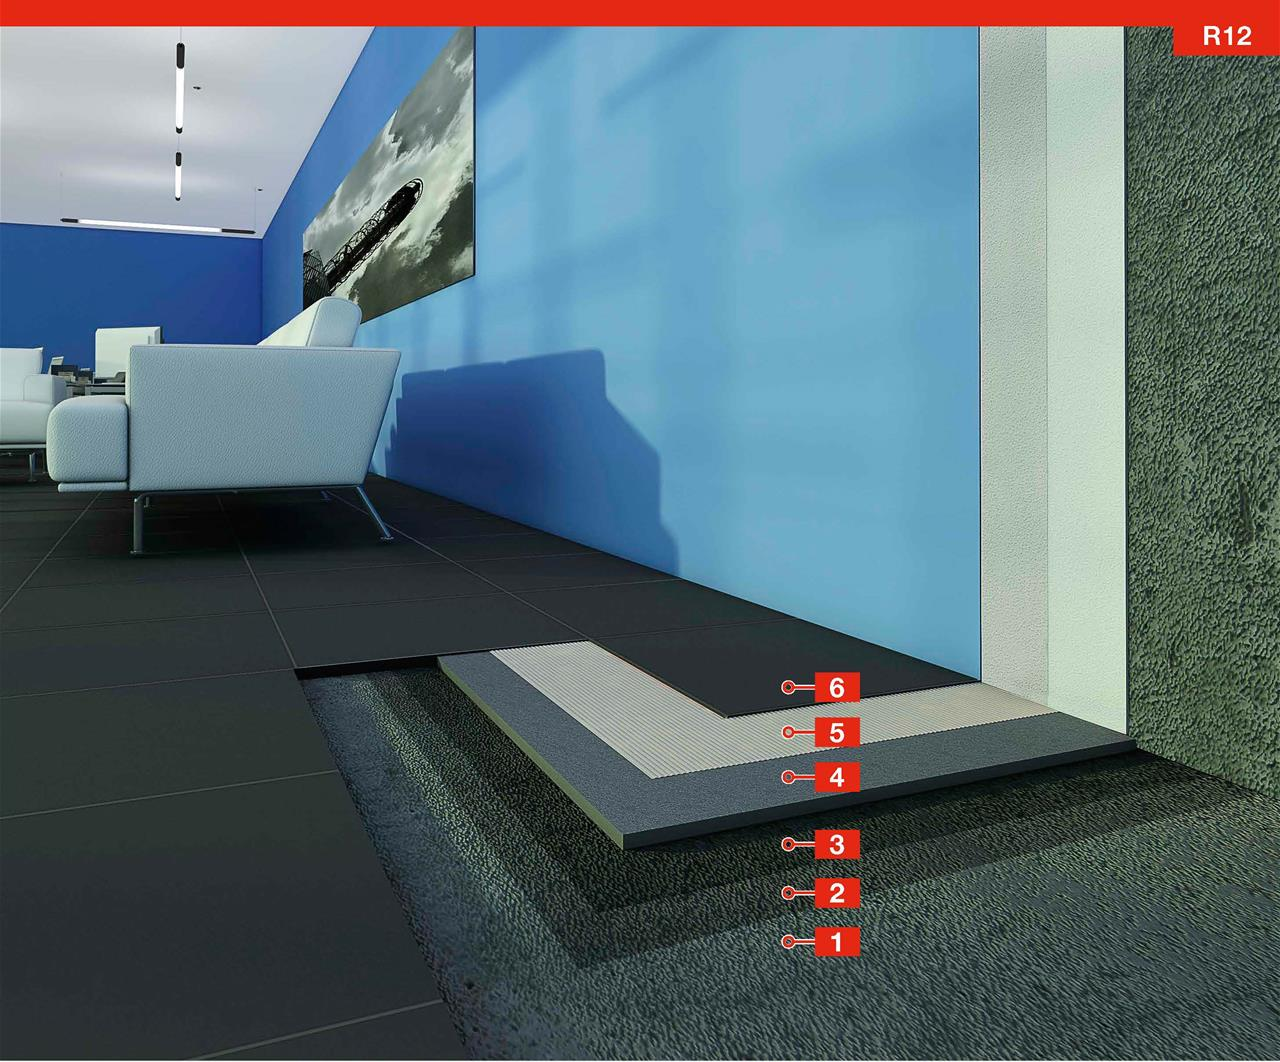 System For The Installation Of Carpet Tiles On Uneven Concrete With High Residual Moisture Content R12